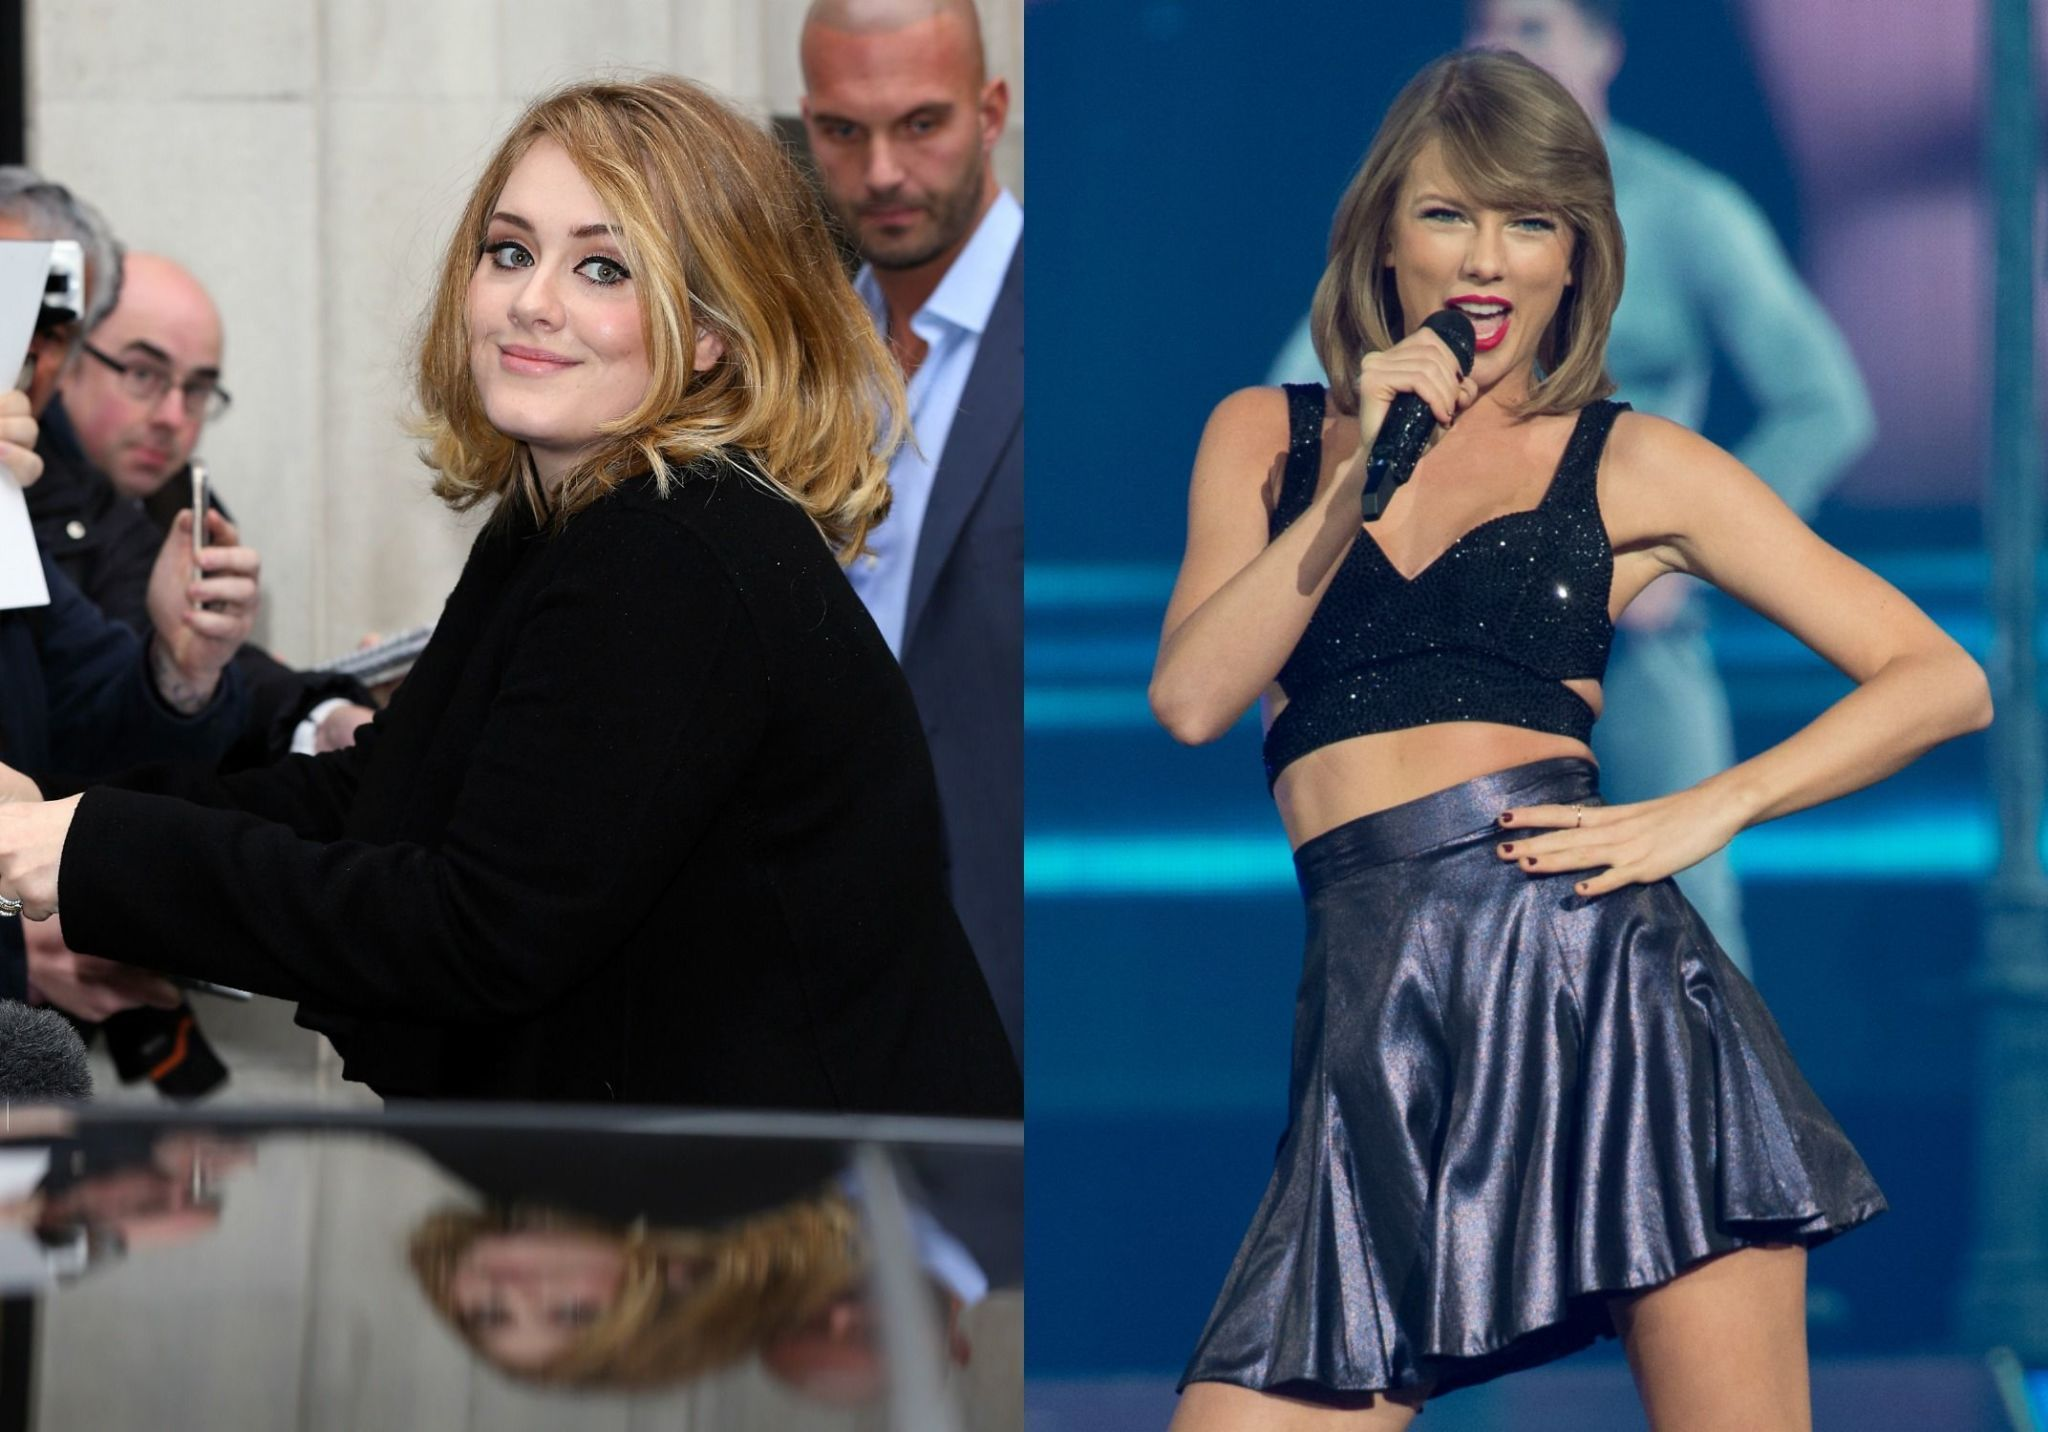 Taylor Swift No Longer Holds This Record, Thanks to Adele